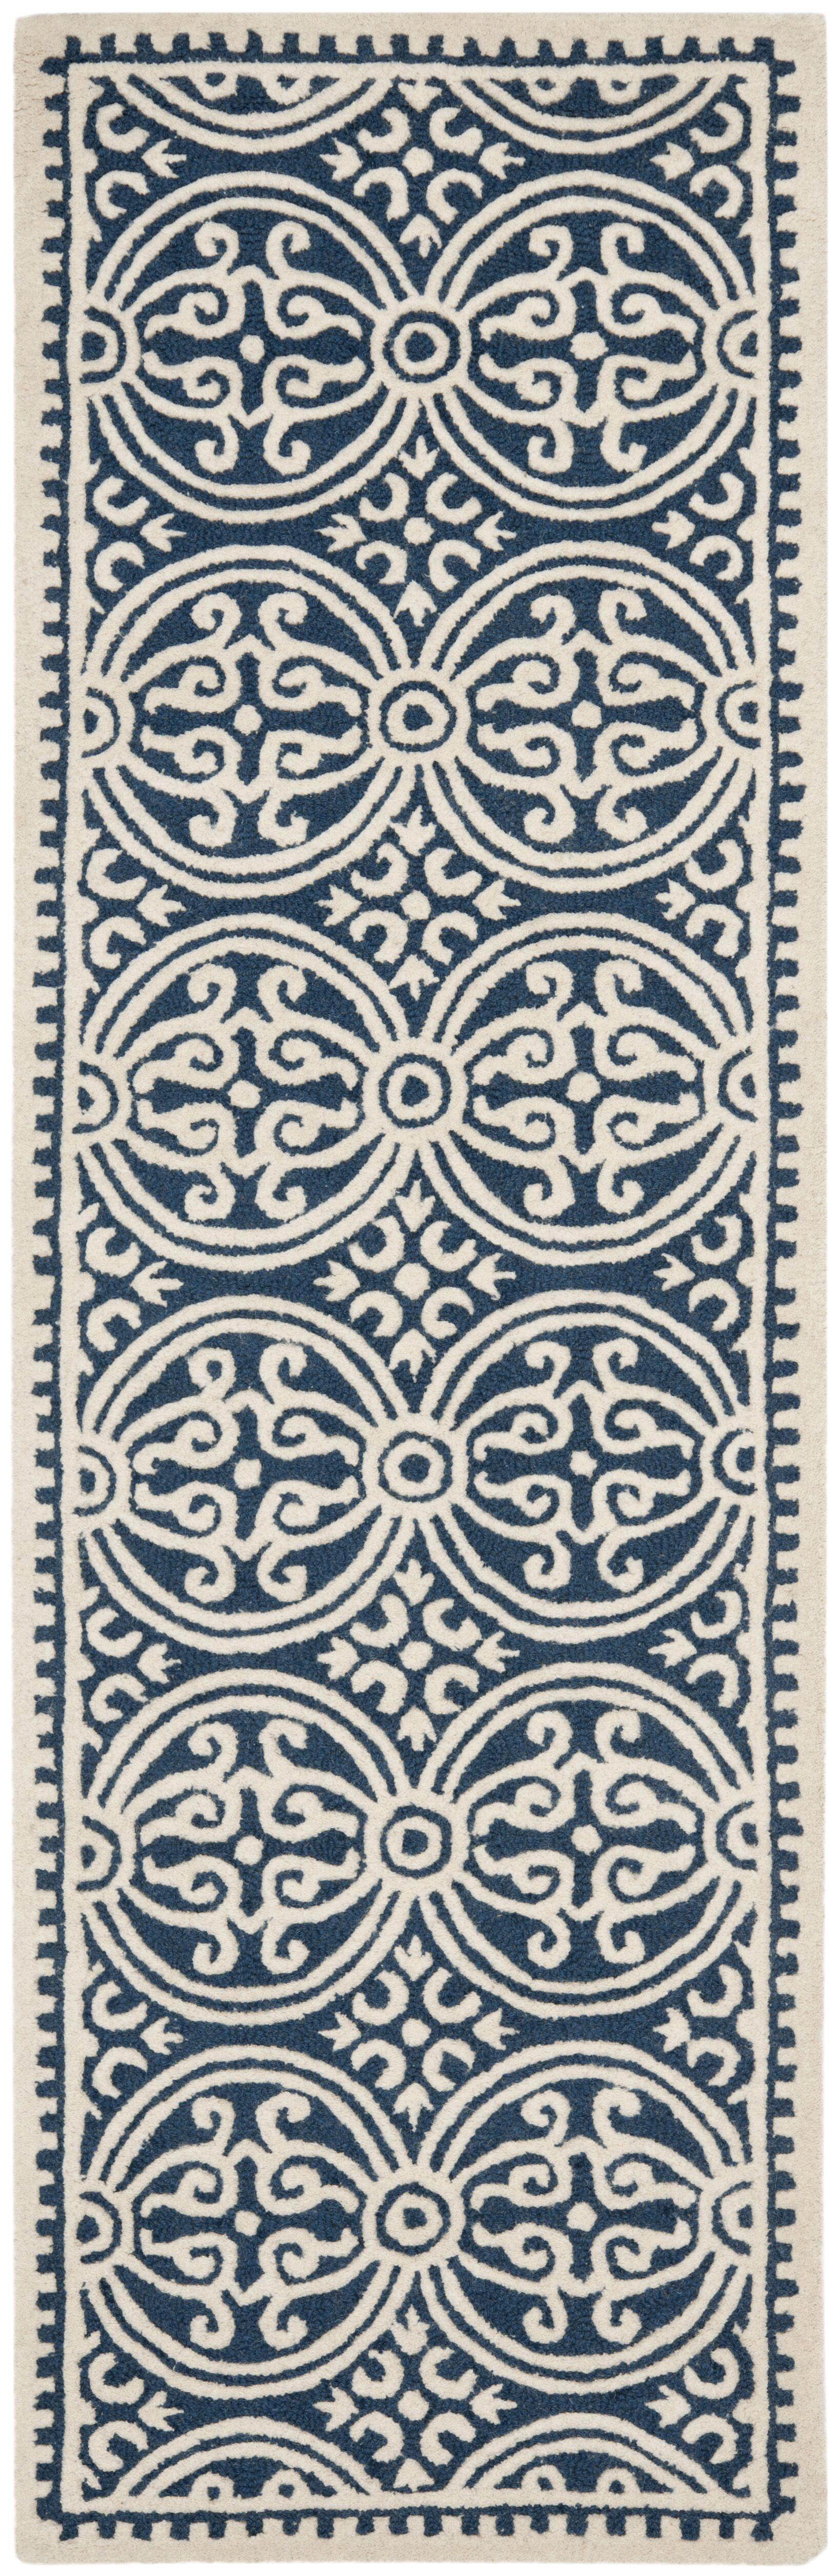 Fairburn Hand-Tufted Wool Navy Area Rug Rug Size: Runner 2'6